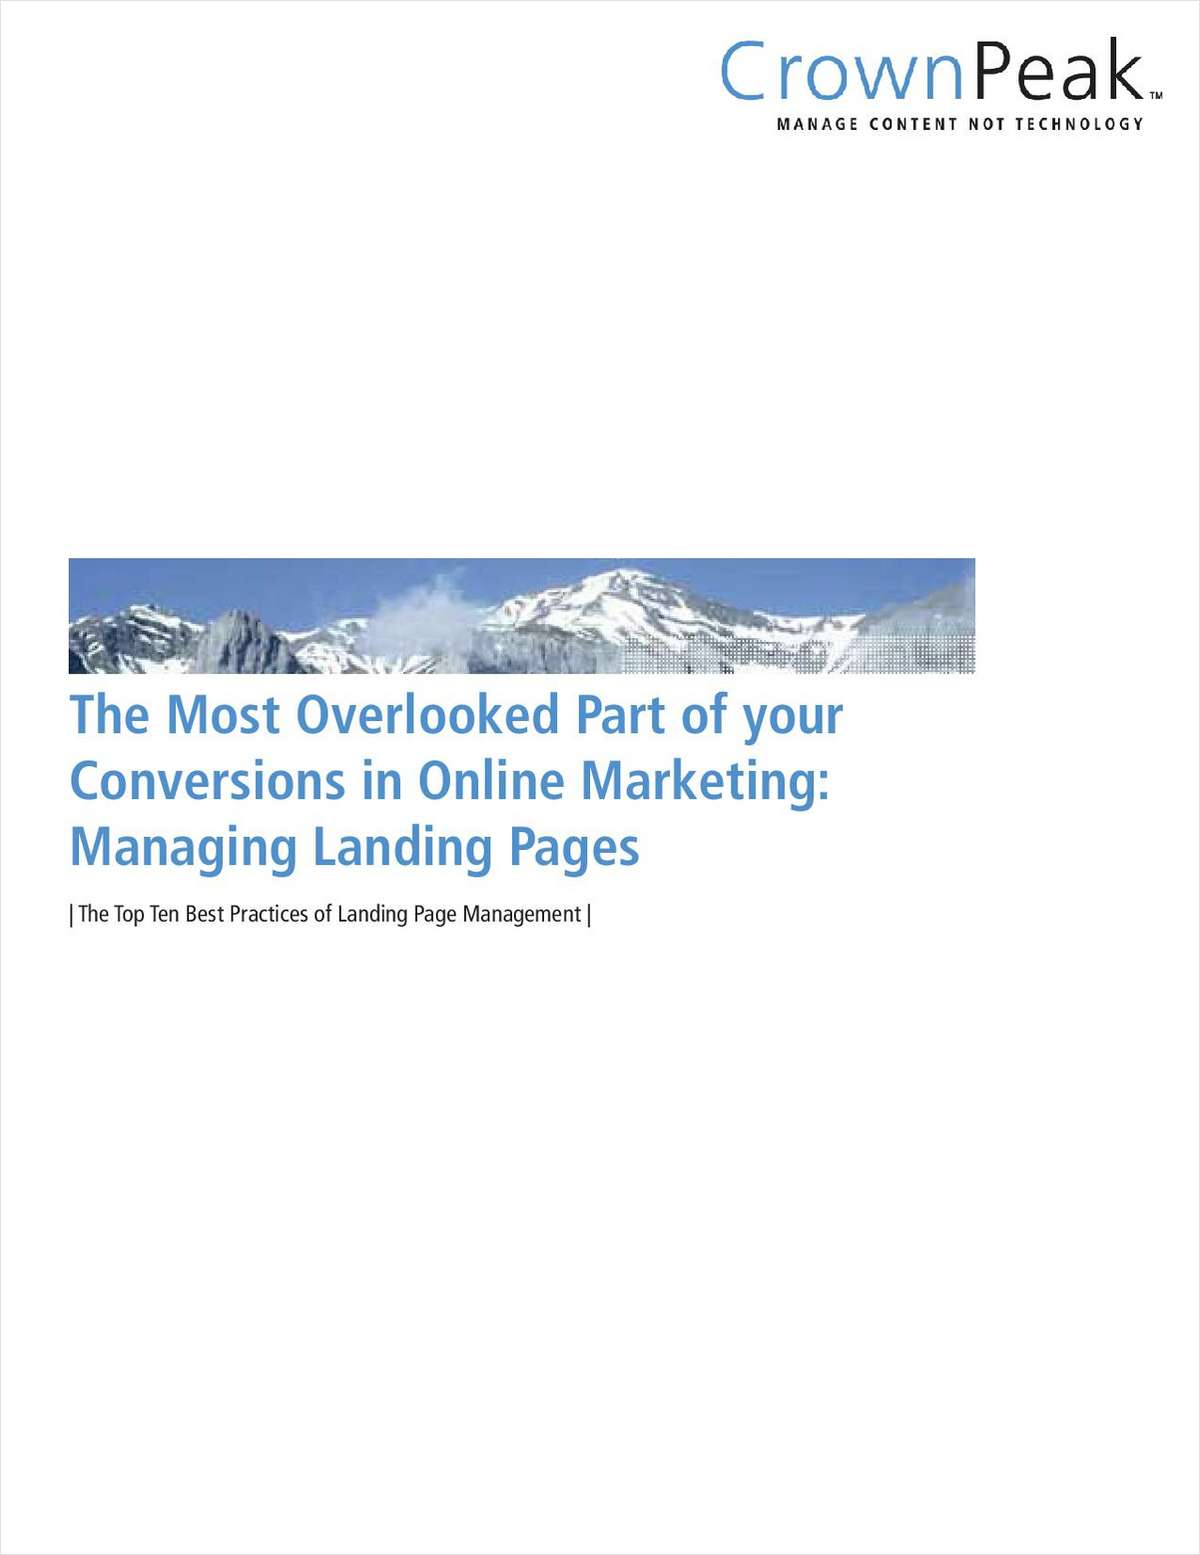 The Most Overlooked Part of your Conversions in Online Marketing: Managing Landing Pages